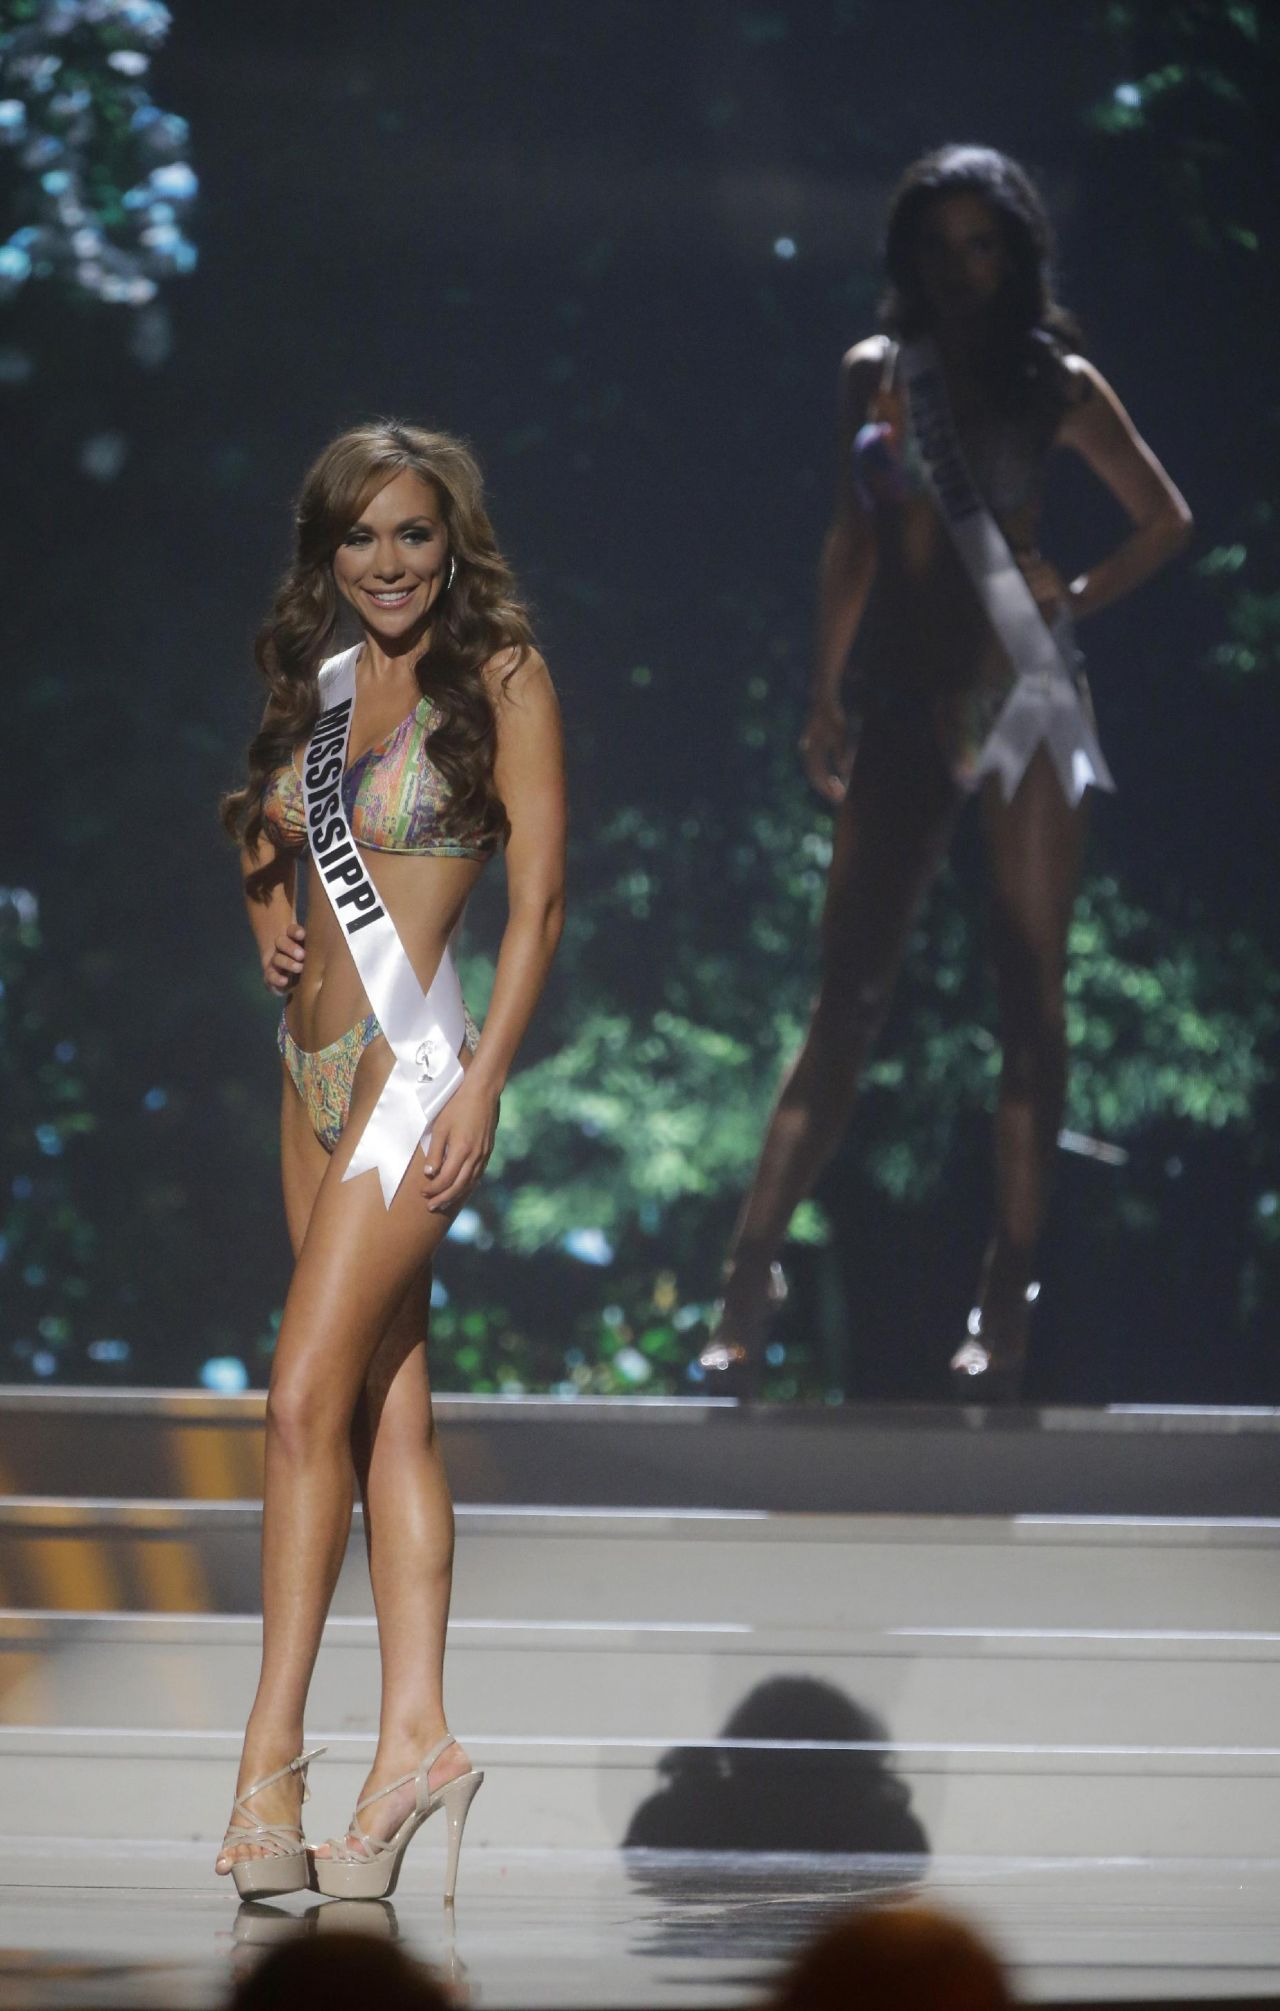 Chelsea Reardon (Mississippi) - Miss USA Preliminary Competition - June 2014